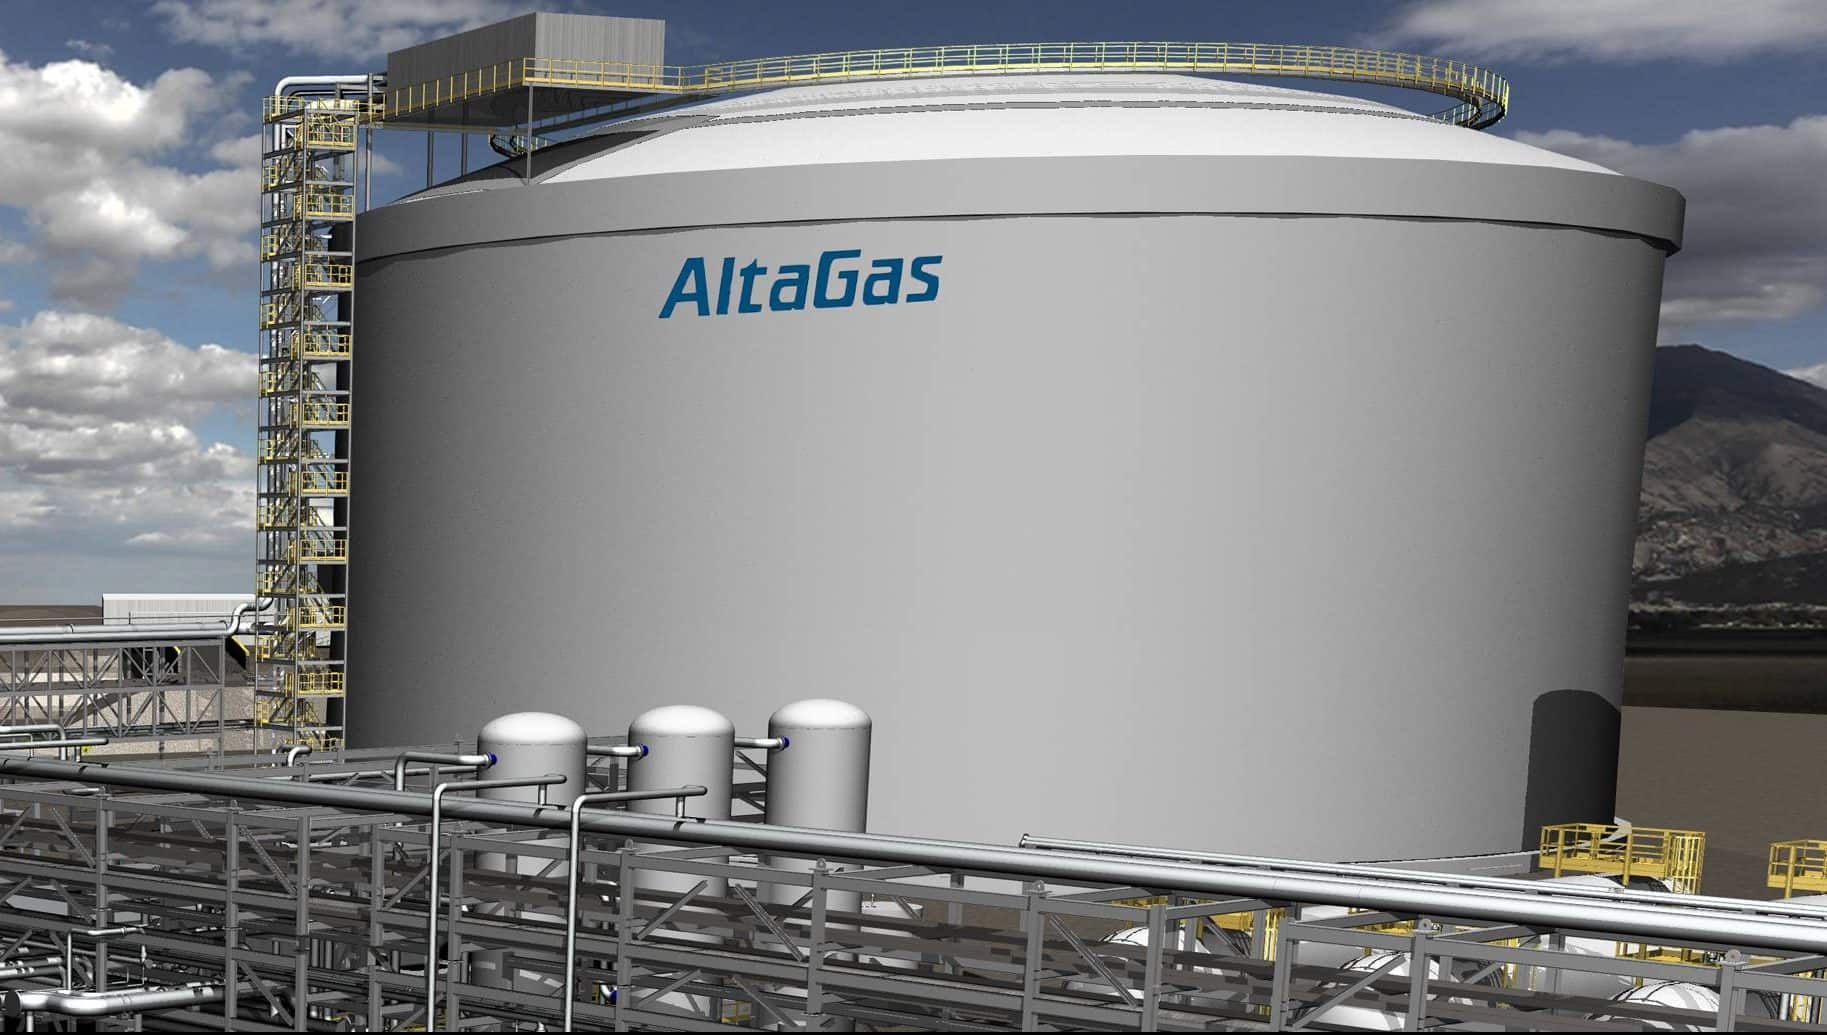 AltaGas Hiring For Various Positions